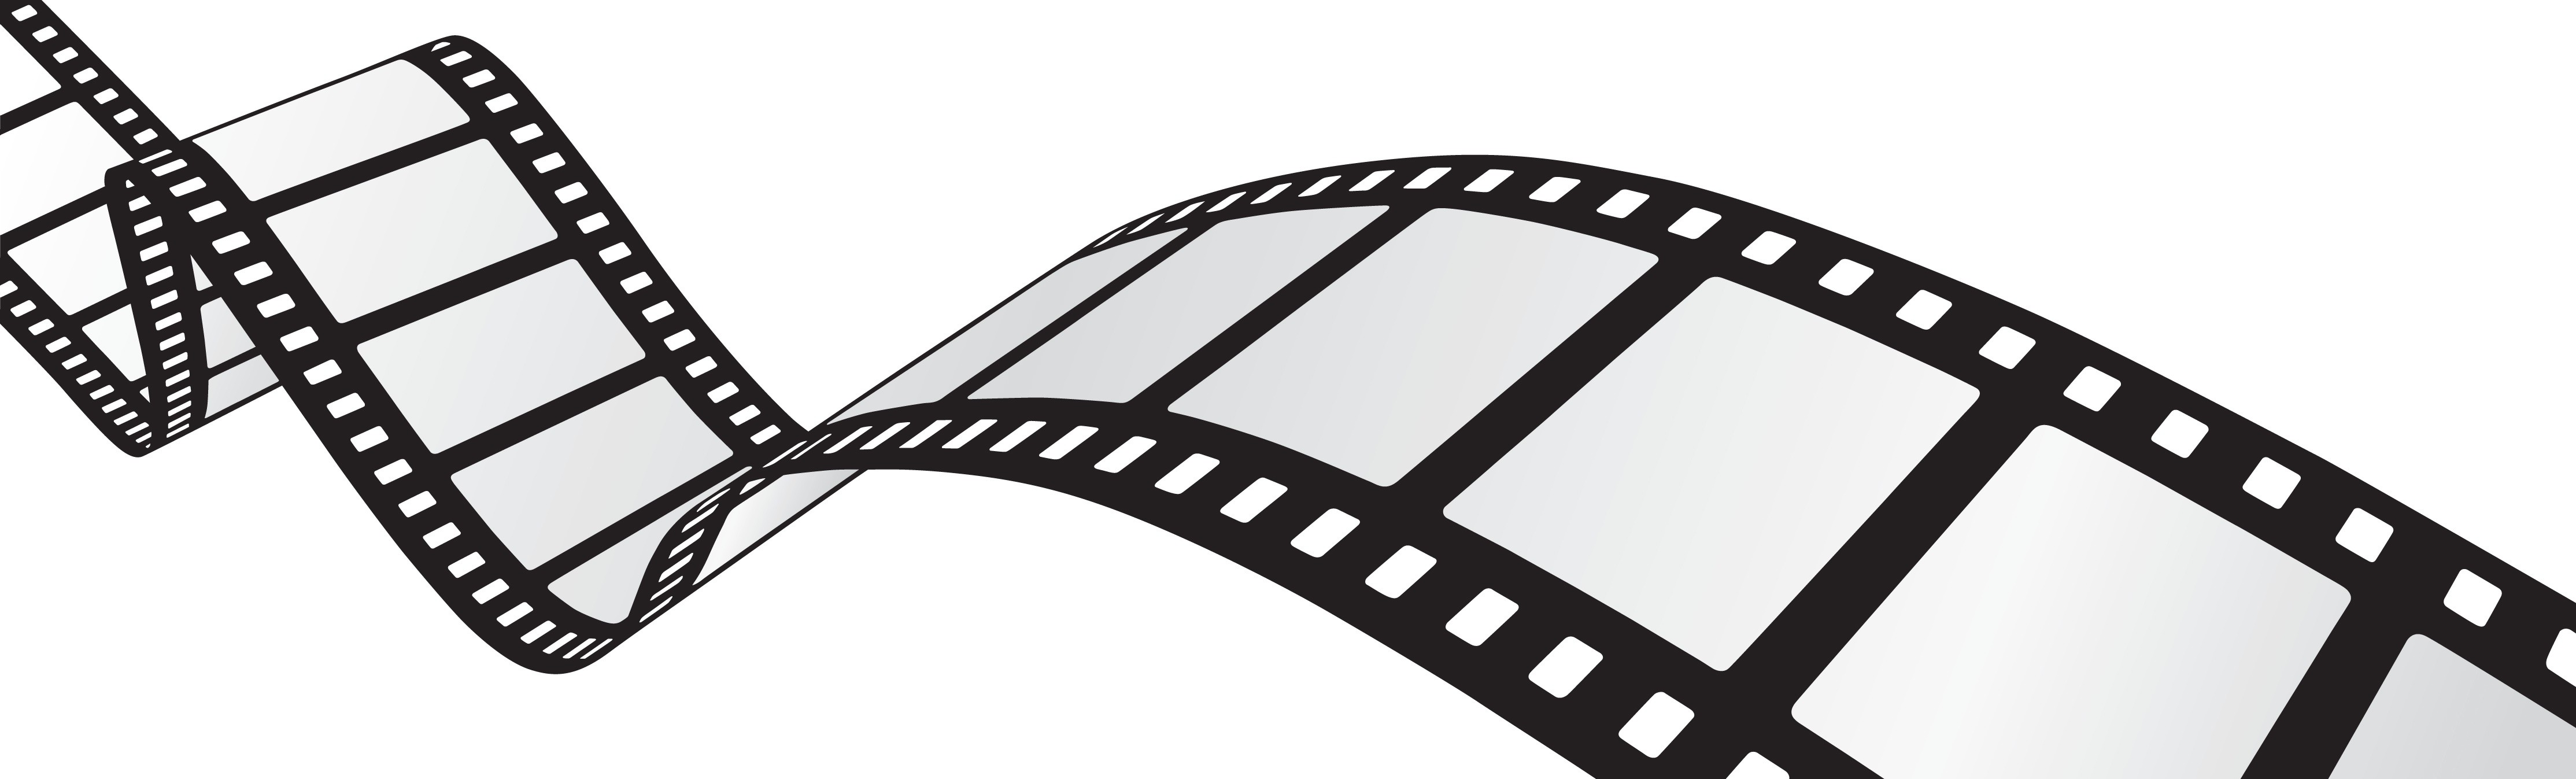 movie reel silhouette | Film Reel Png Filmreel-e1364616592886.jpg